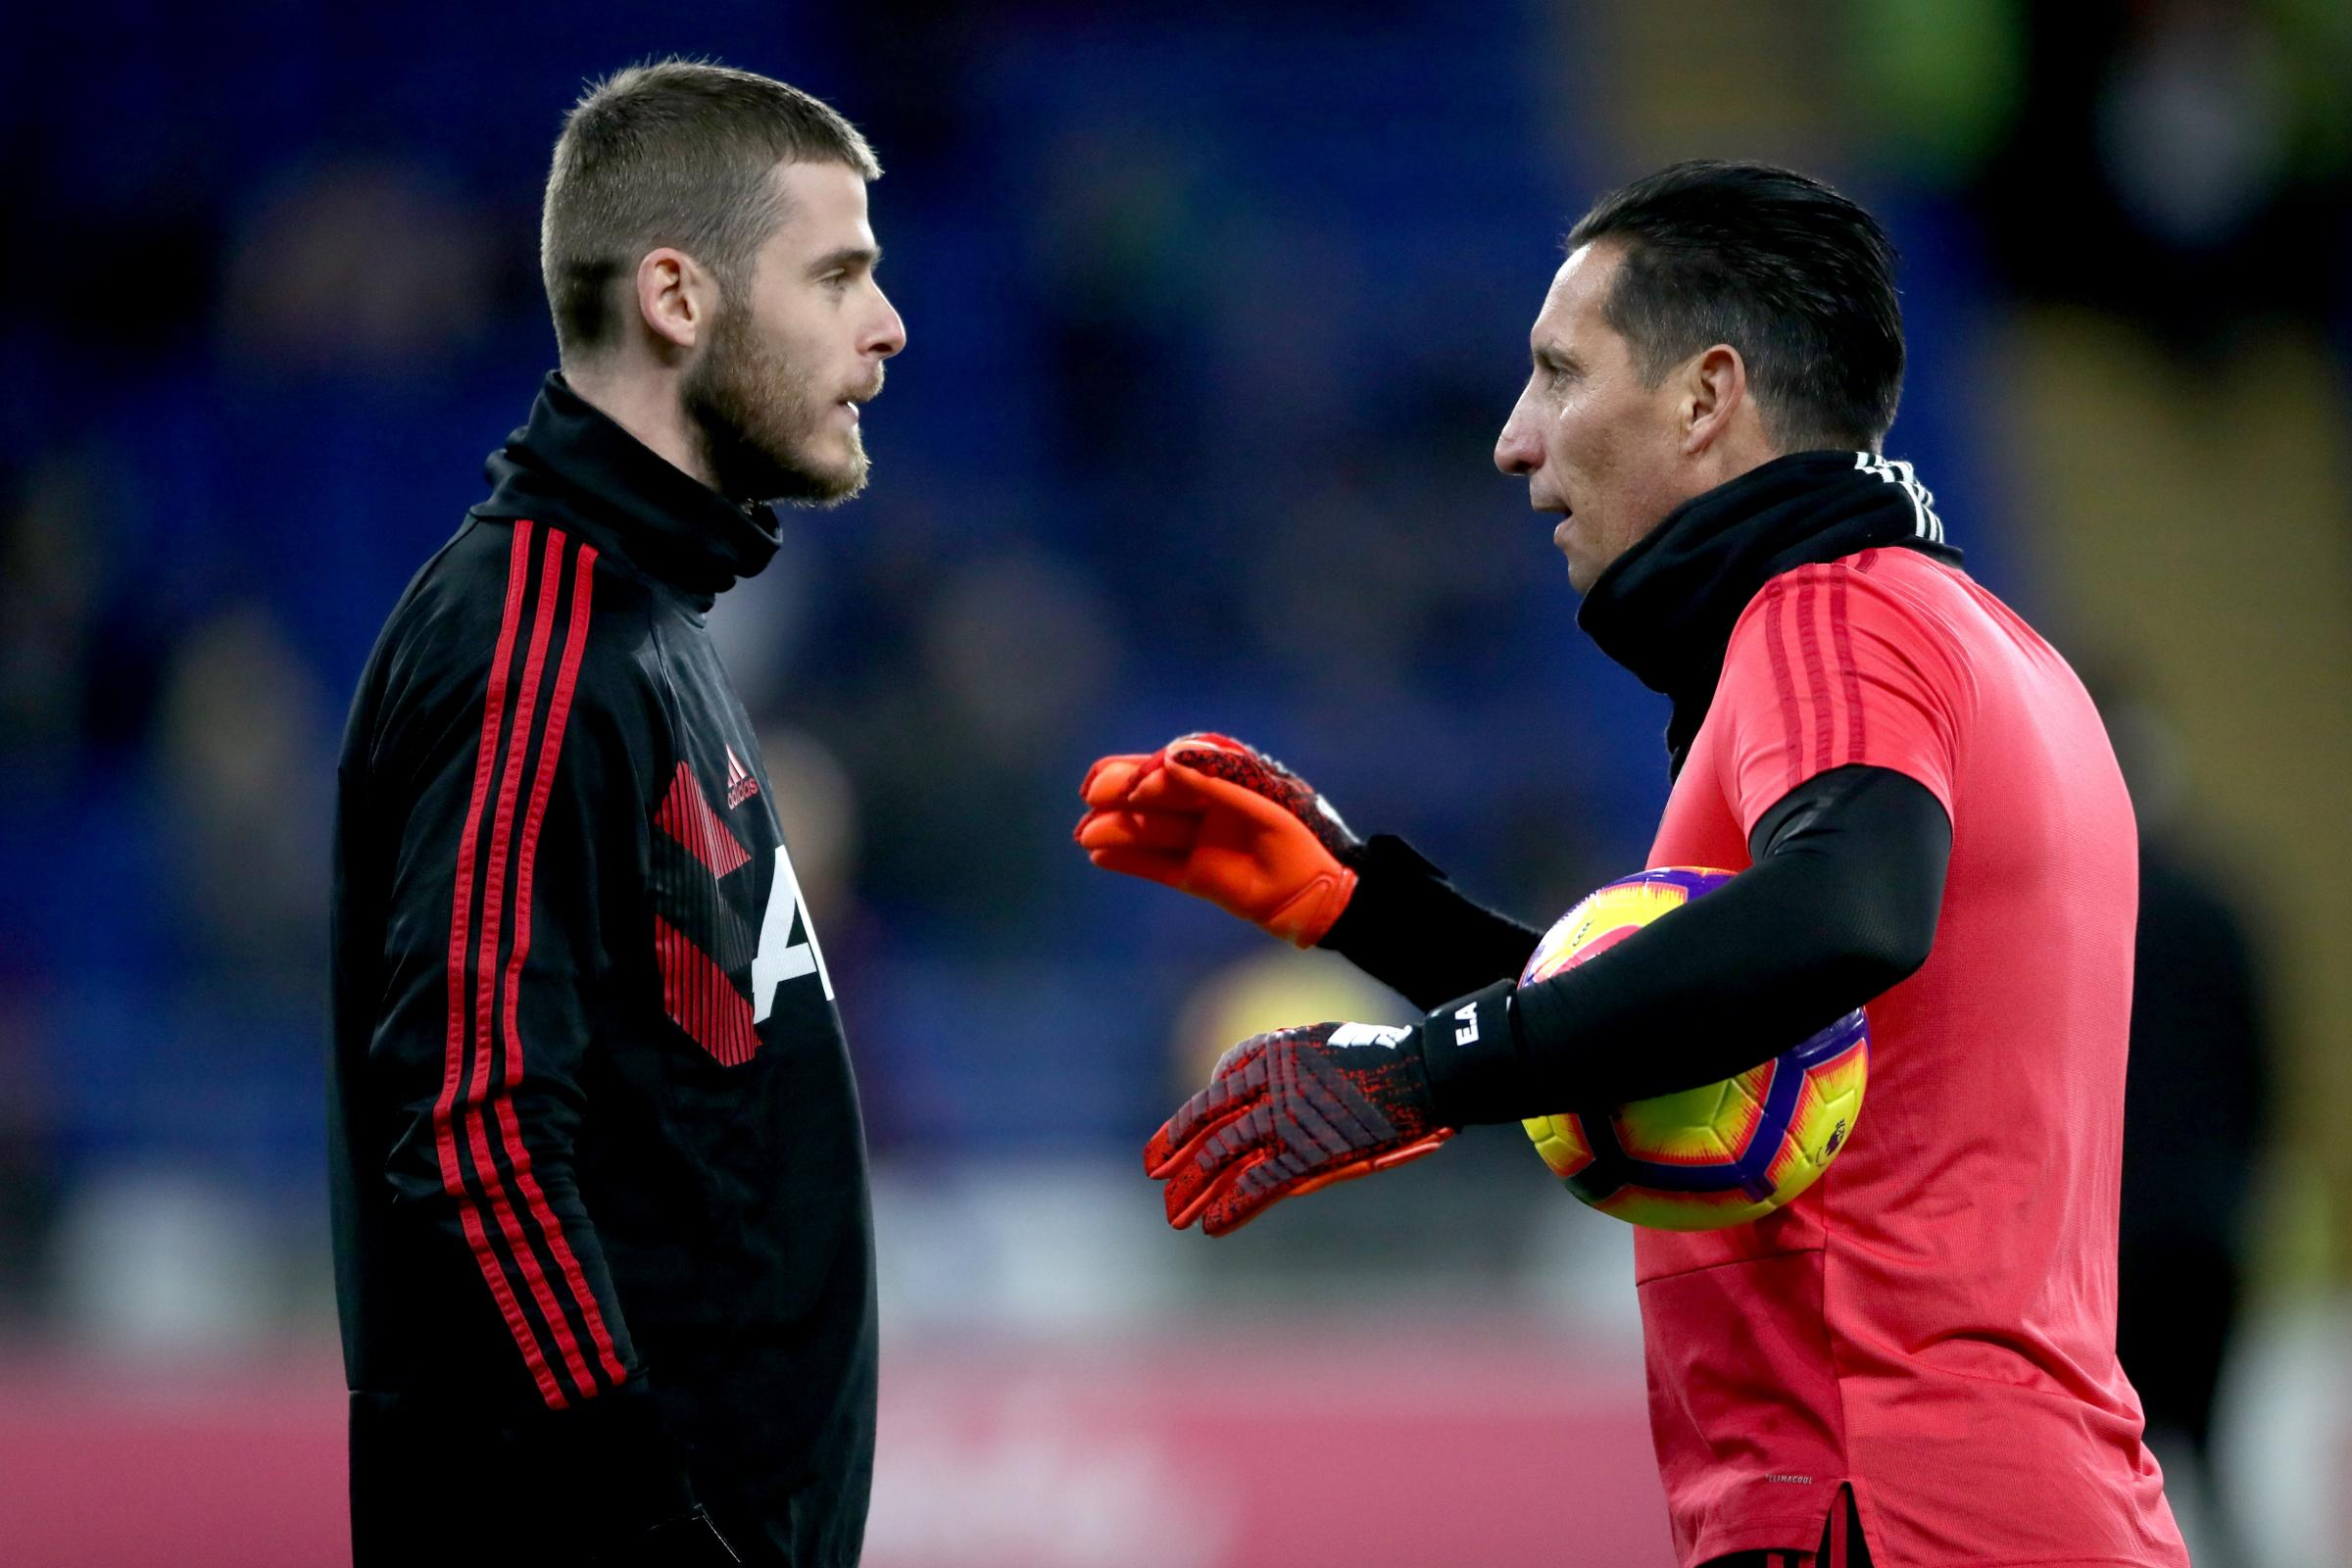 Emilio Alvarez believes David De Gea has more level to go